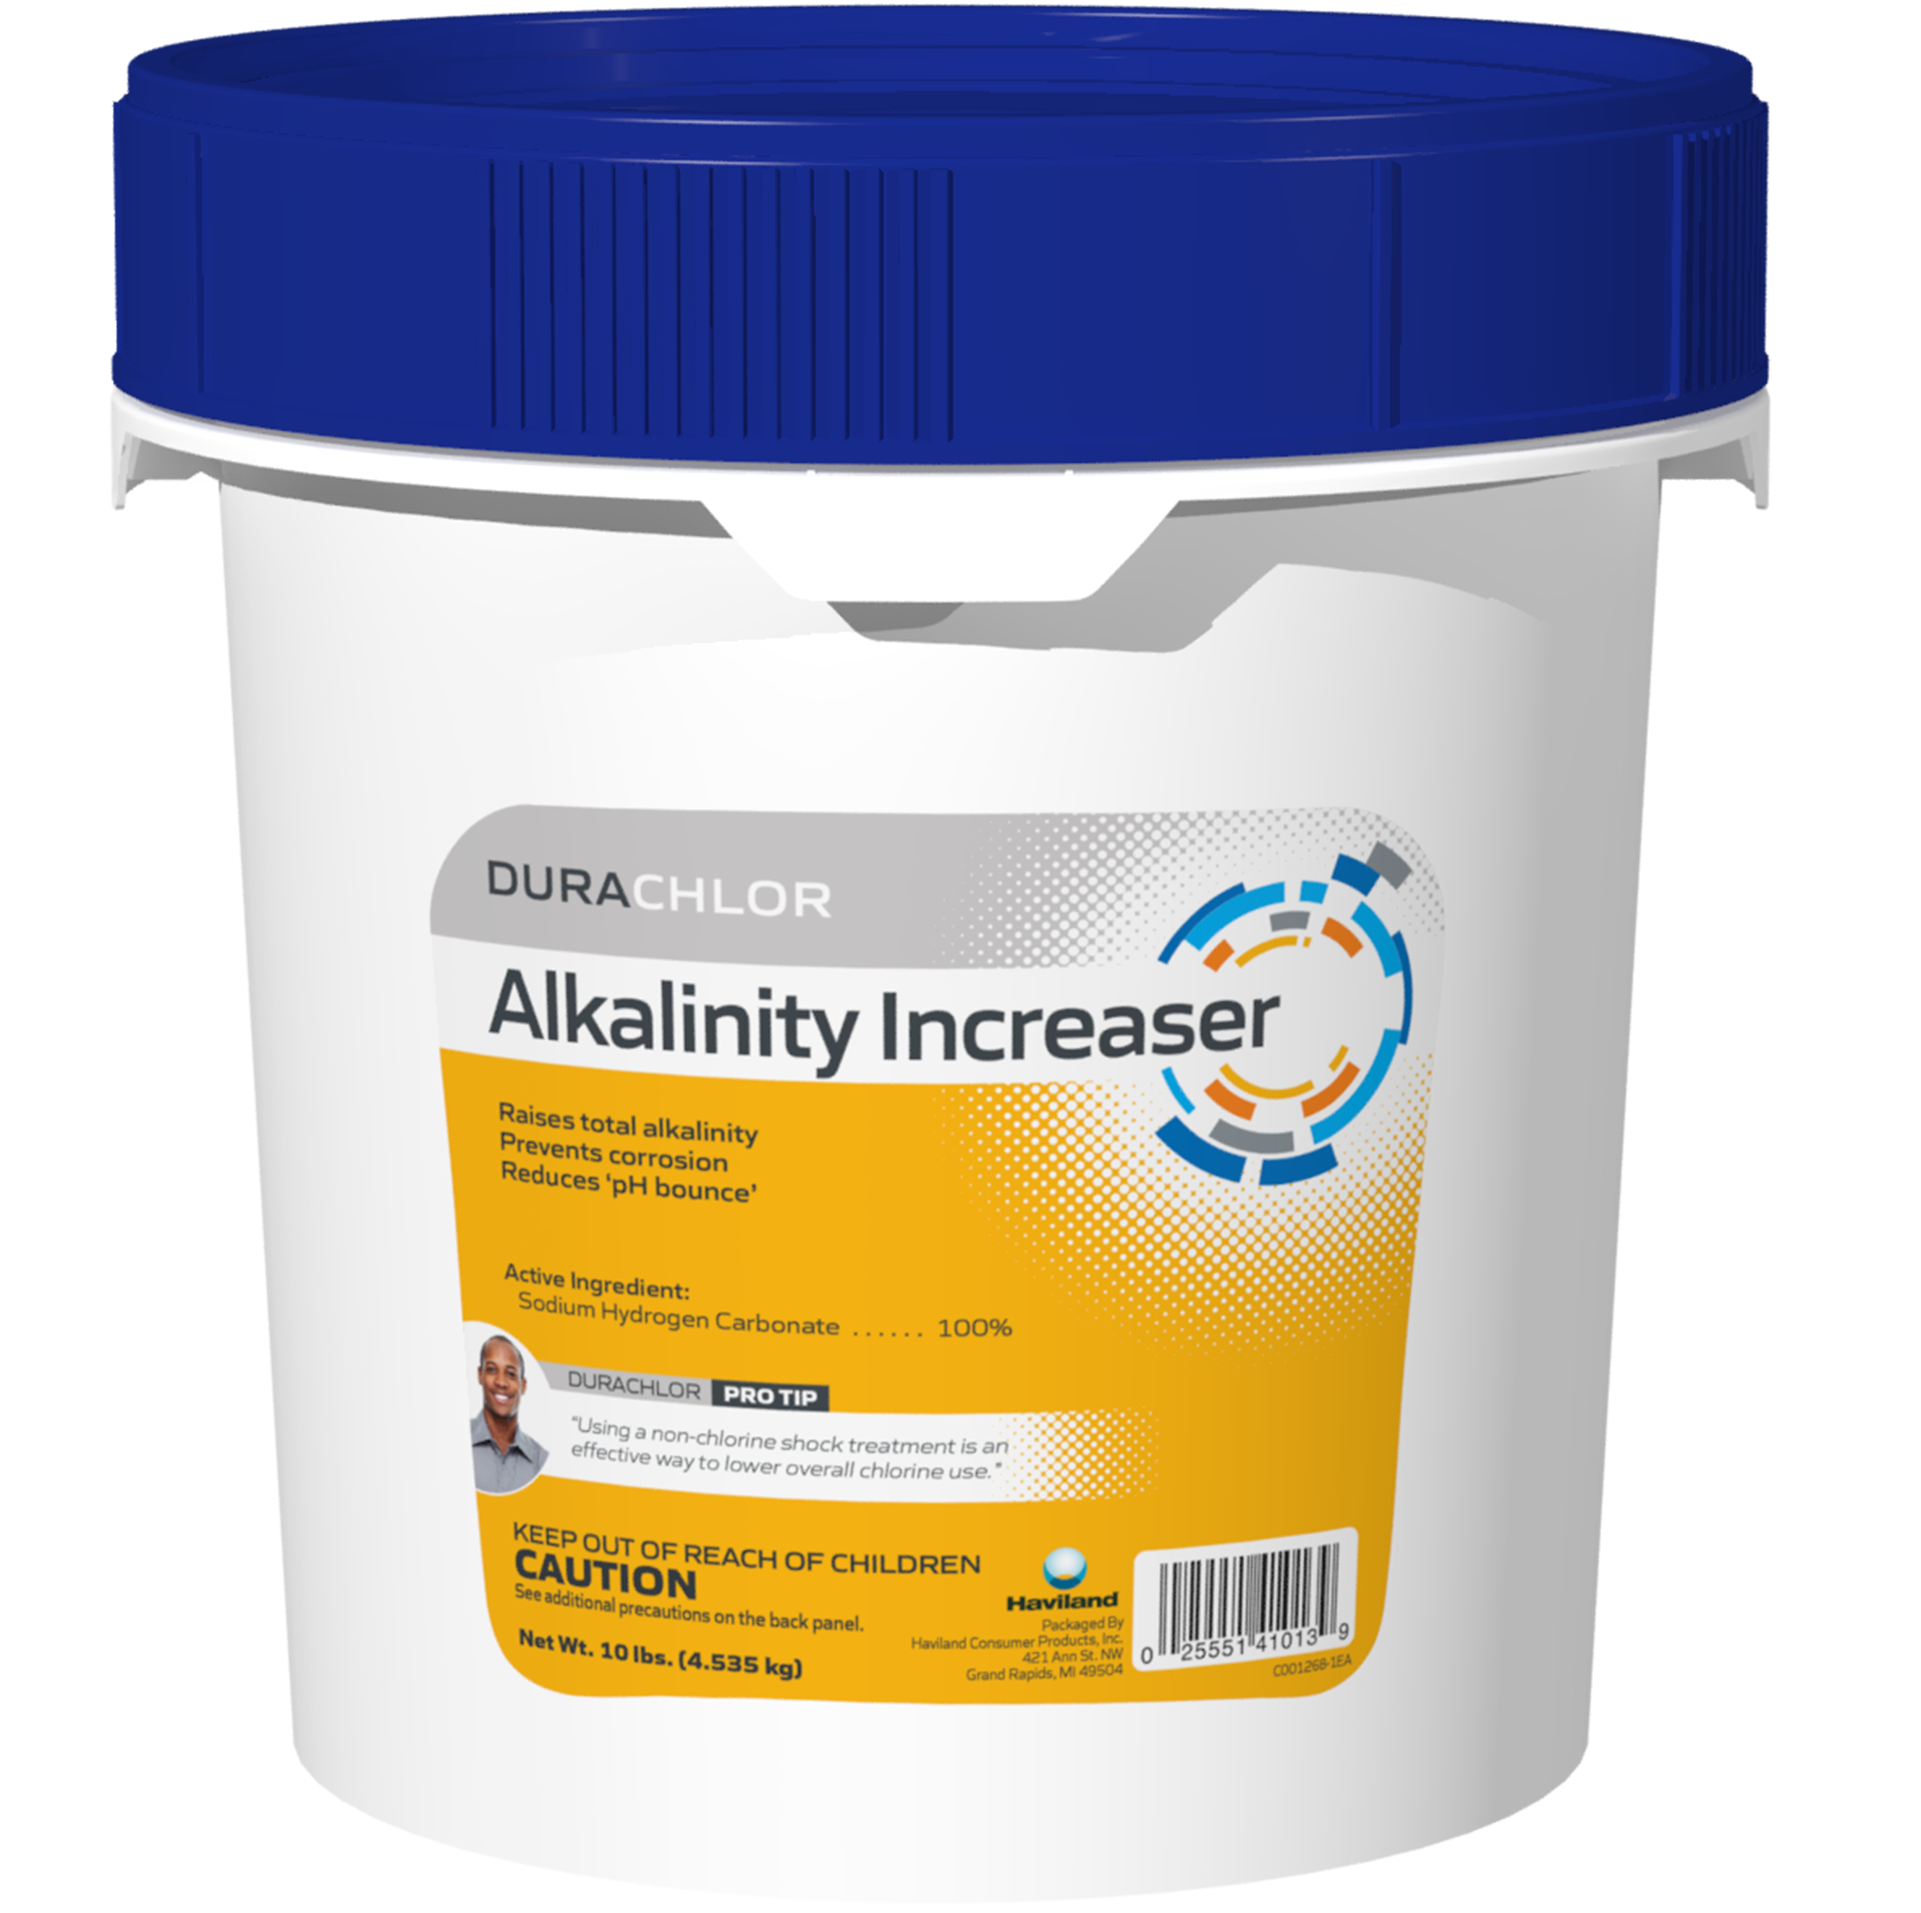 10lb Alkalinity Increaser